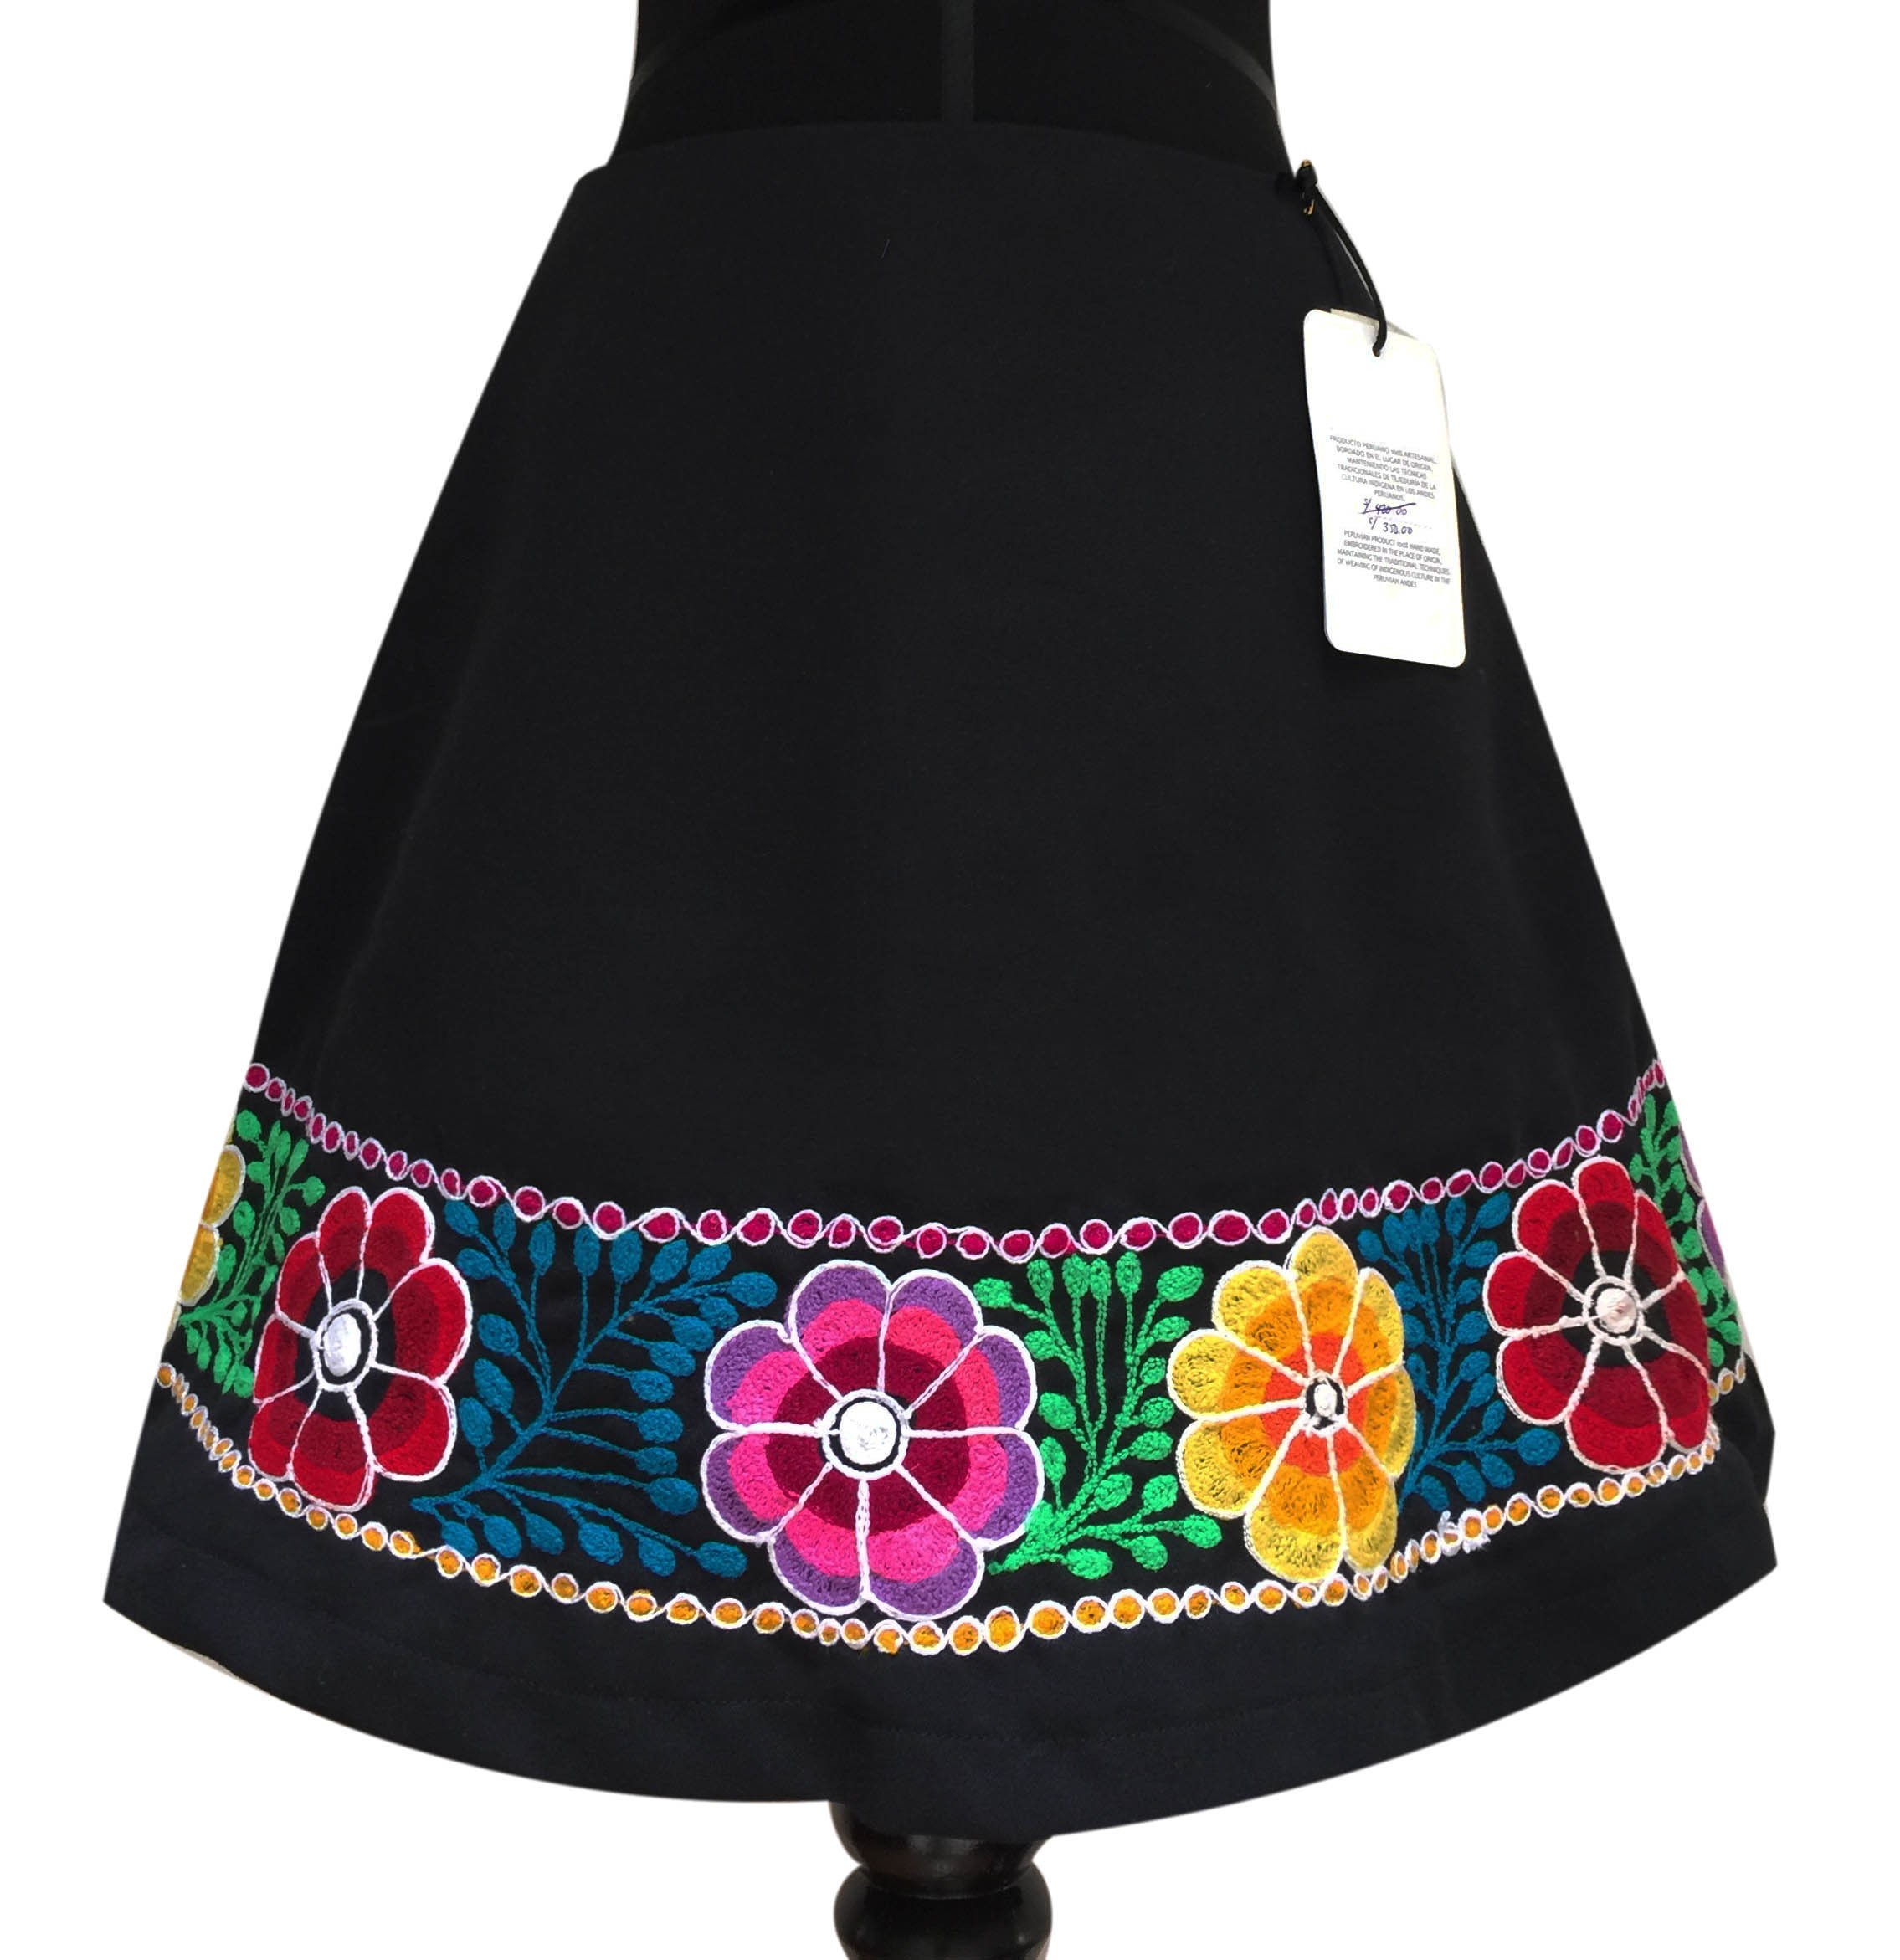 Ccatca andean skirt, Size S